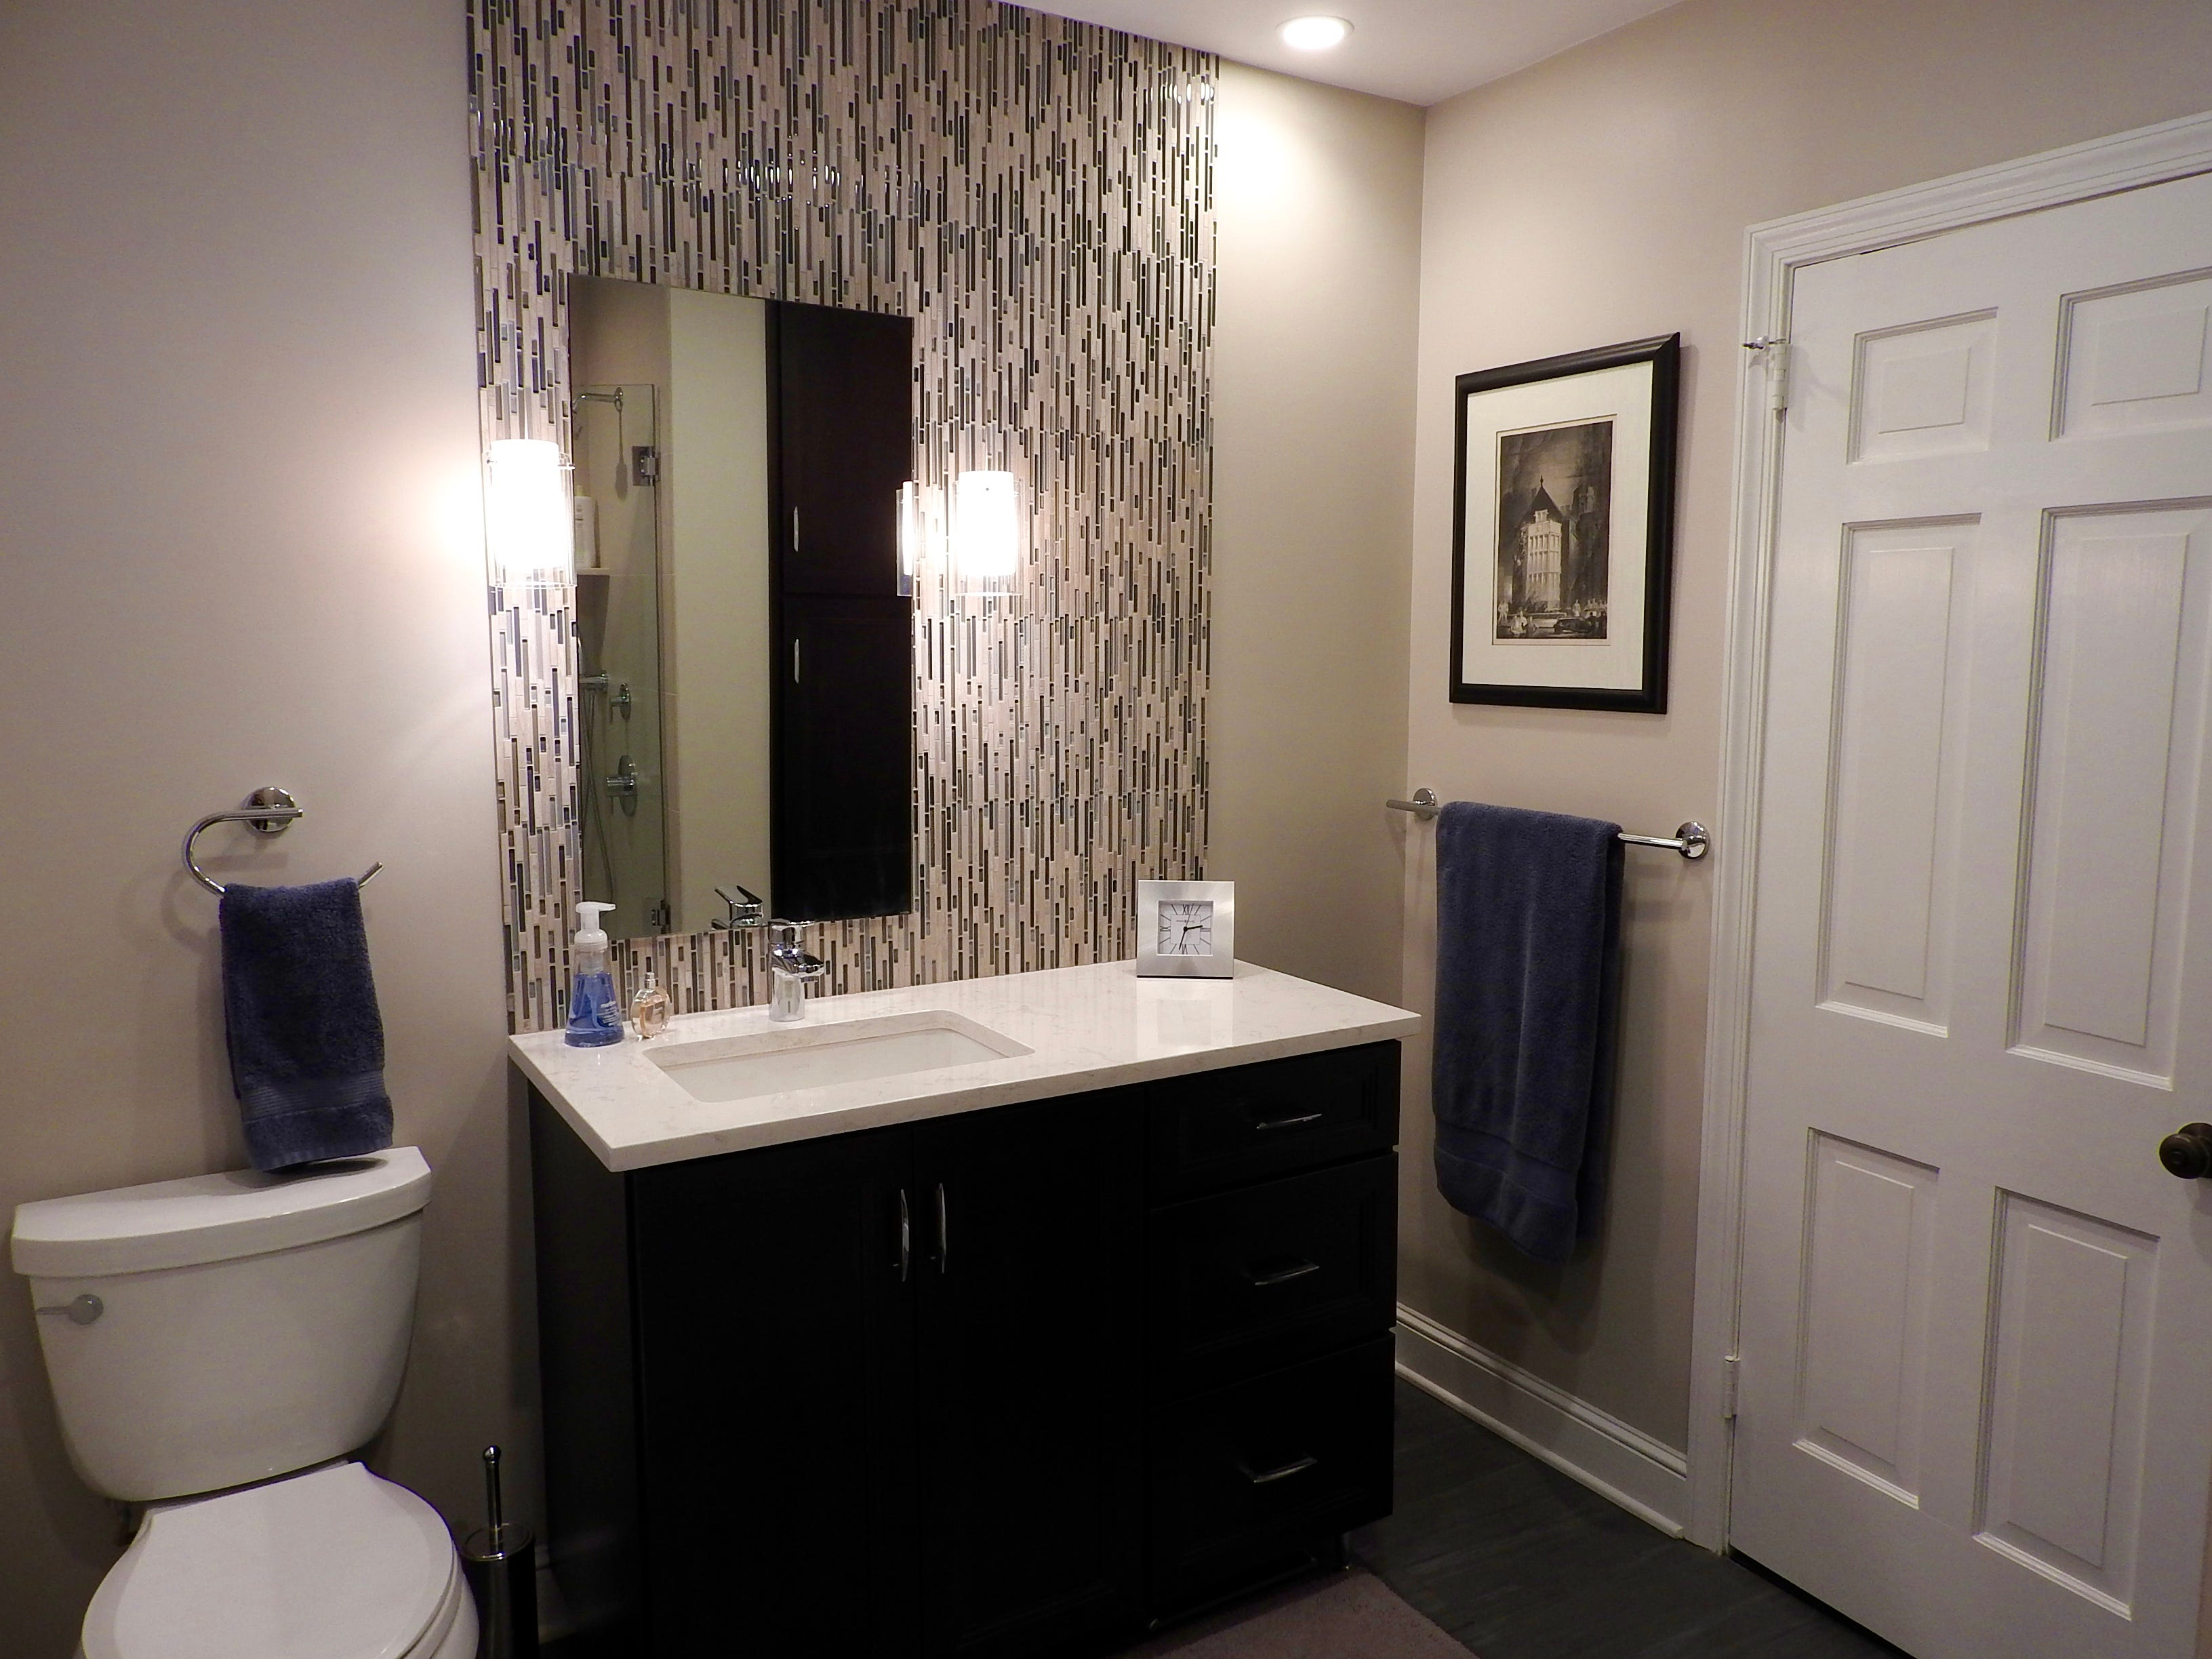 All the bathrooms at 103 Edgewood Road in Alapocas are updated in contemporary style; many were enlarged during renovation.